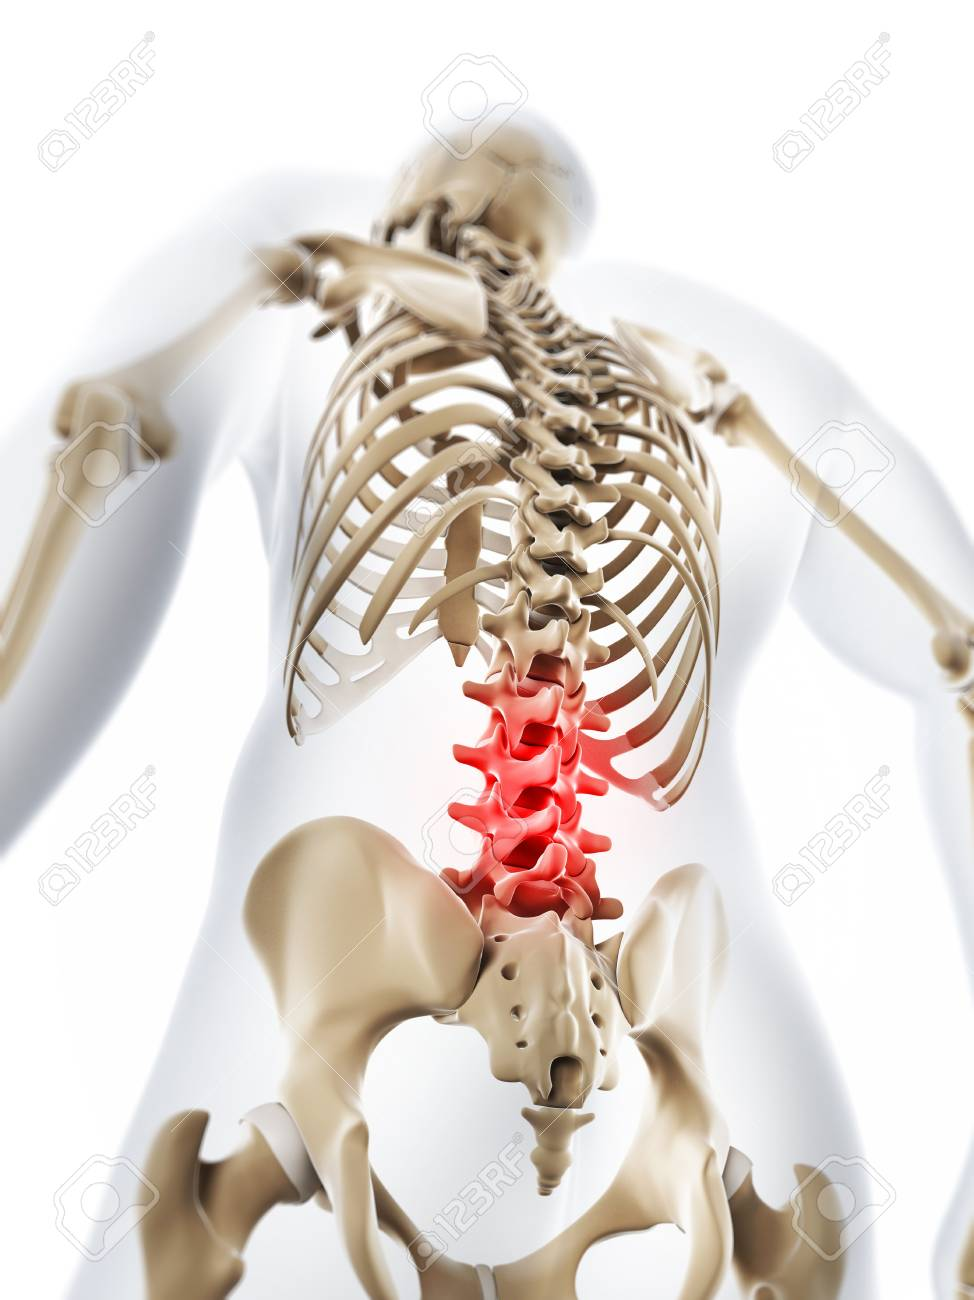 Lower Back Painconceptual Computer Artwork Stock Photo Picture And